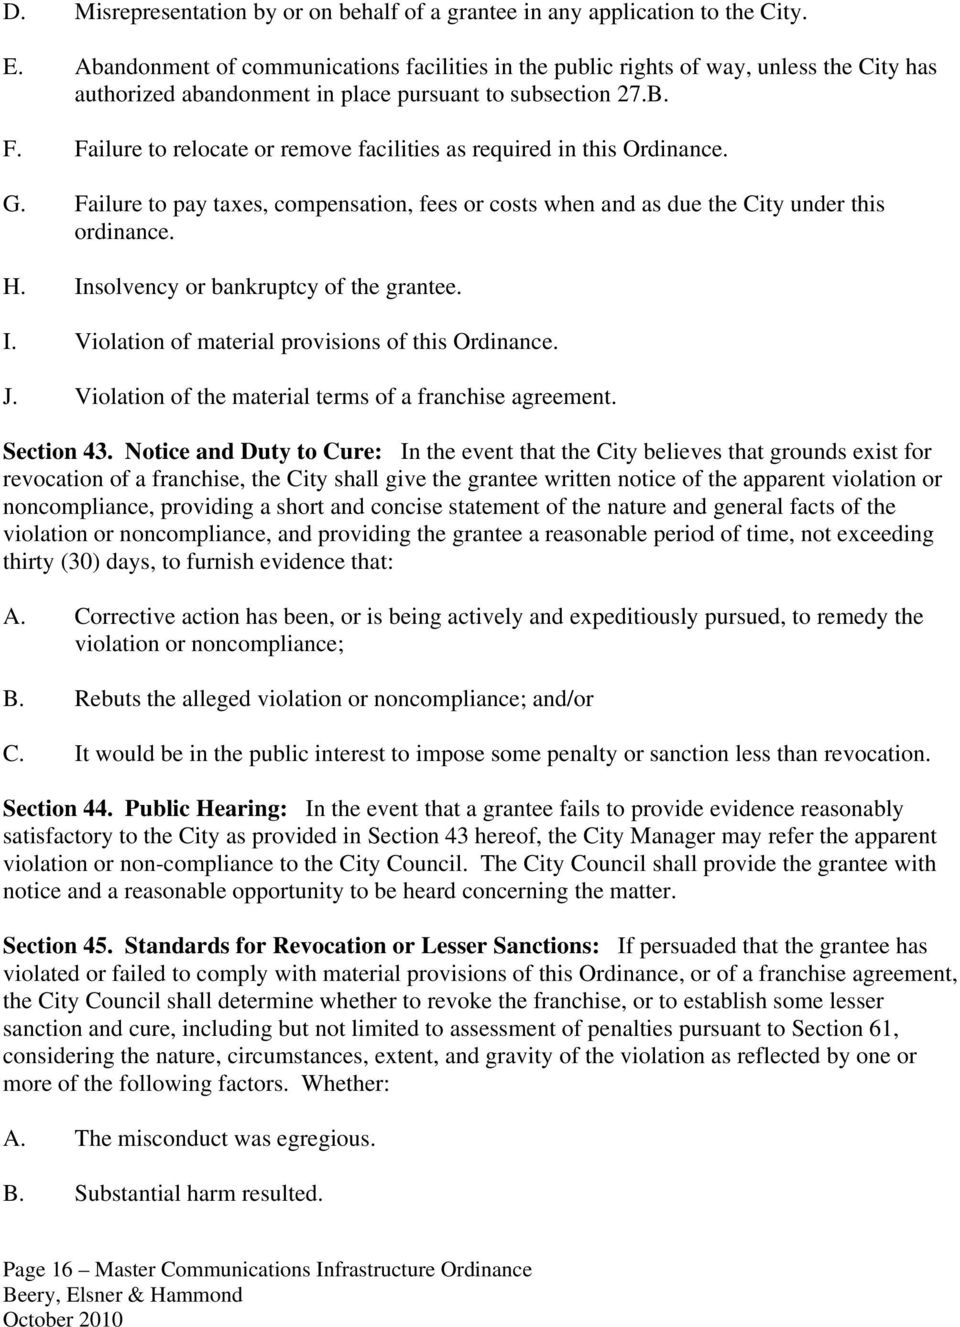 Failure to relocate or remove facilities as required in this Ordinance. G. Failure to pay taxes, compensation, fees or costs when and as due the City under this ordinance. H.